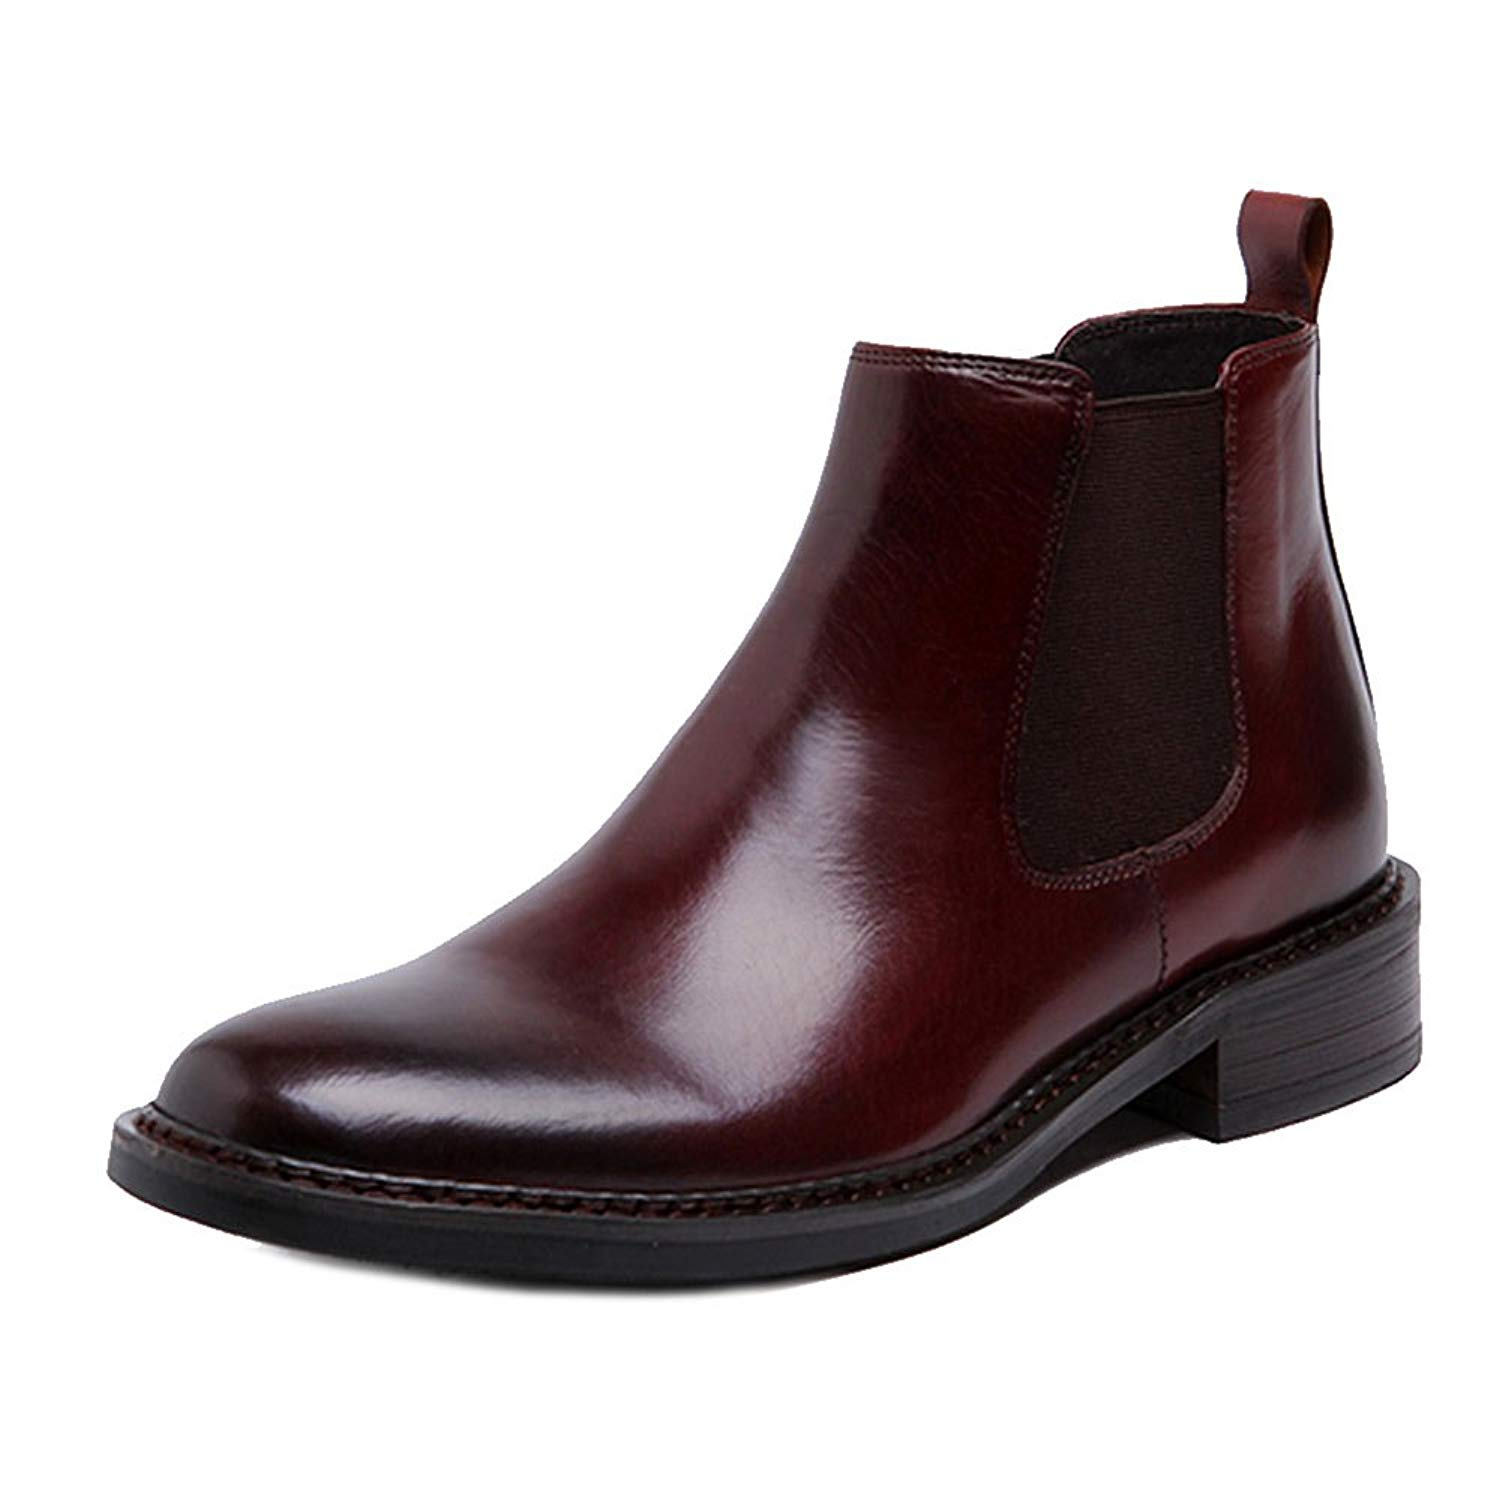 5b589dfe685 Cheap Brogue Chelsea Boots Mens, find Brogue Chelsea Boots Mens ...